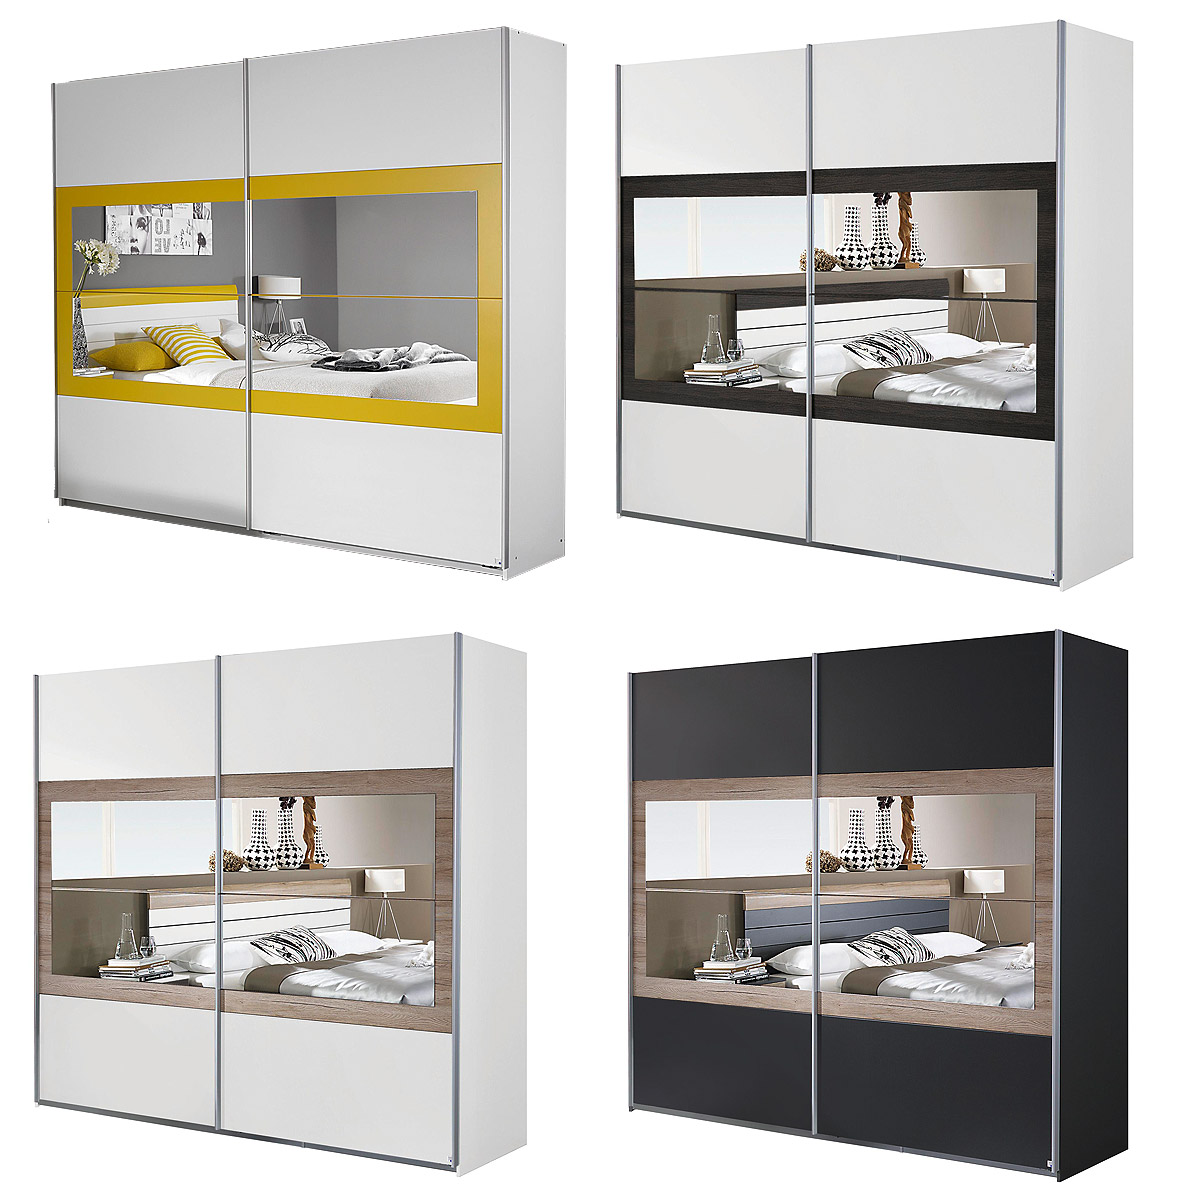 schwebet renschrank tarragona schlafzimmer kleiderschrank 2 t rig mit spiegel ebay. Black Bedroom Furniture Sets. Home Design Ideas